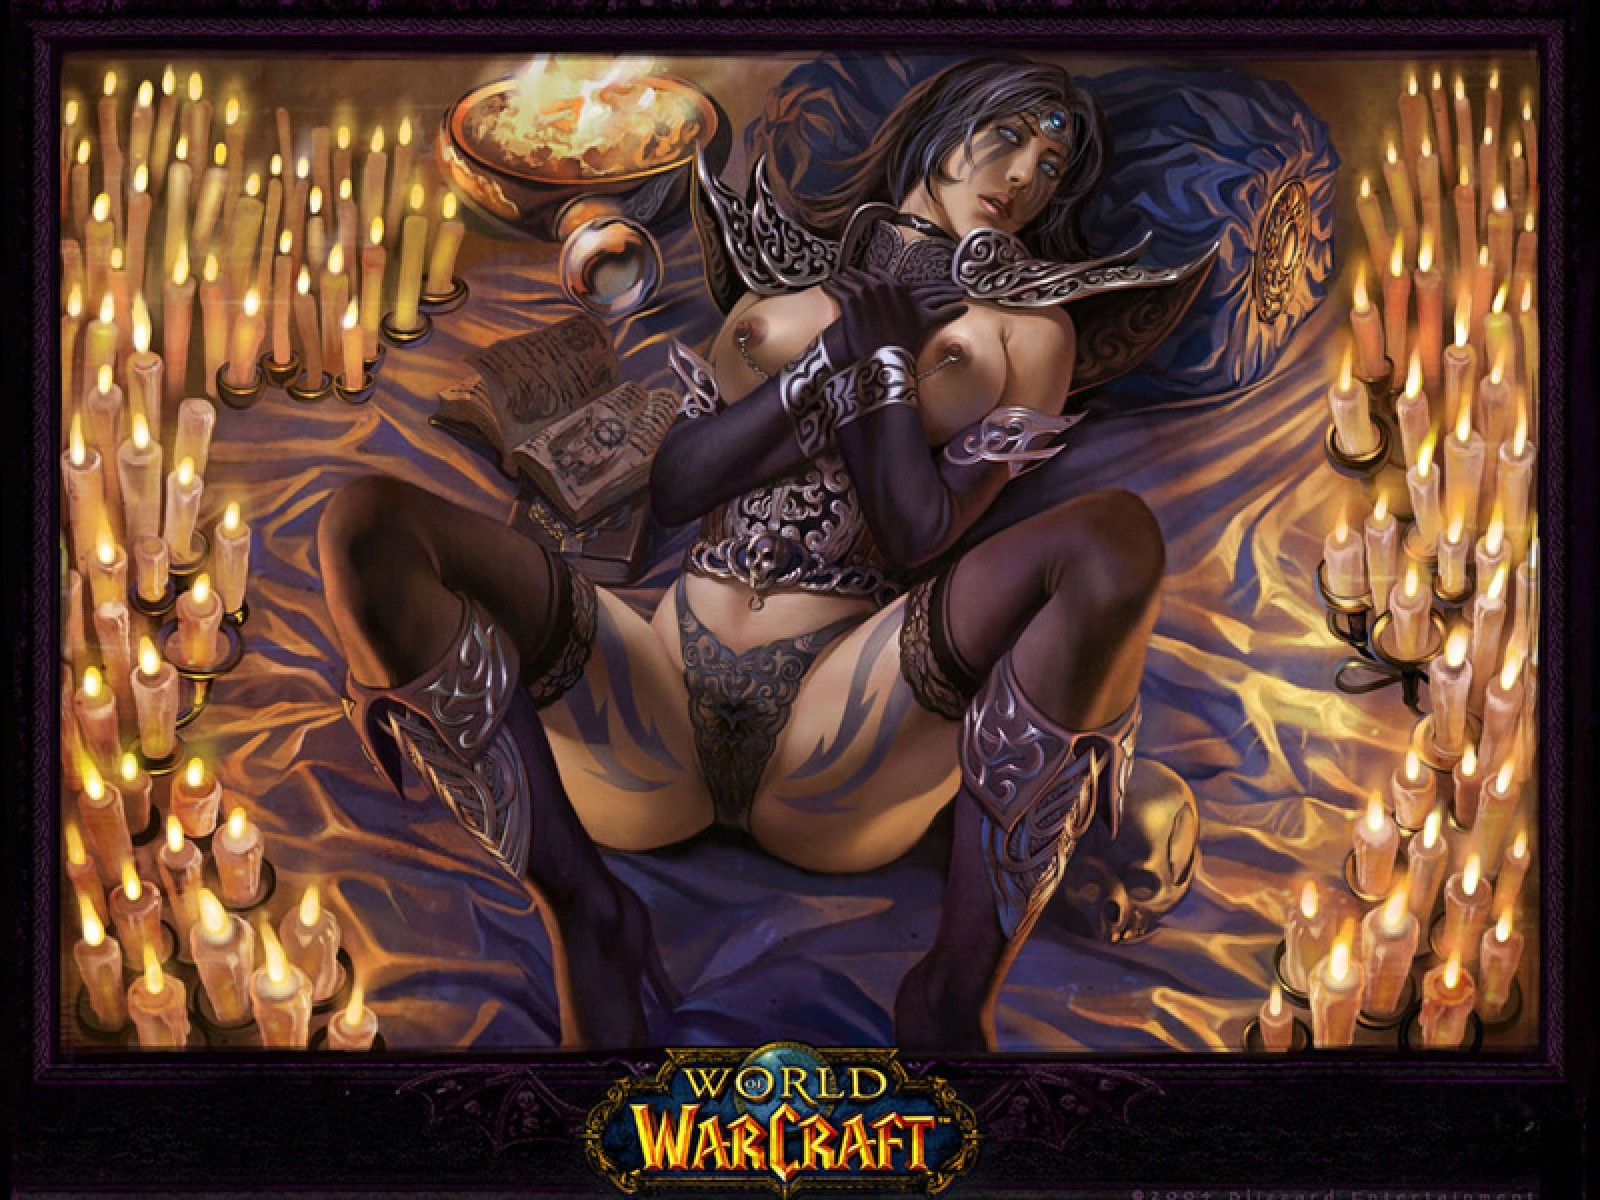 Warcraft 3 sex photo sexy movies